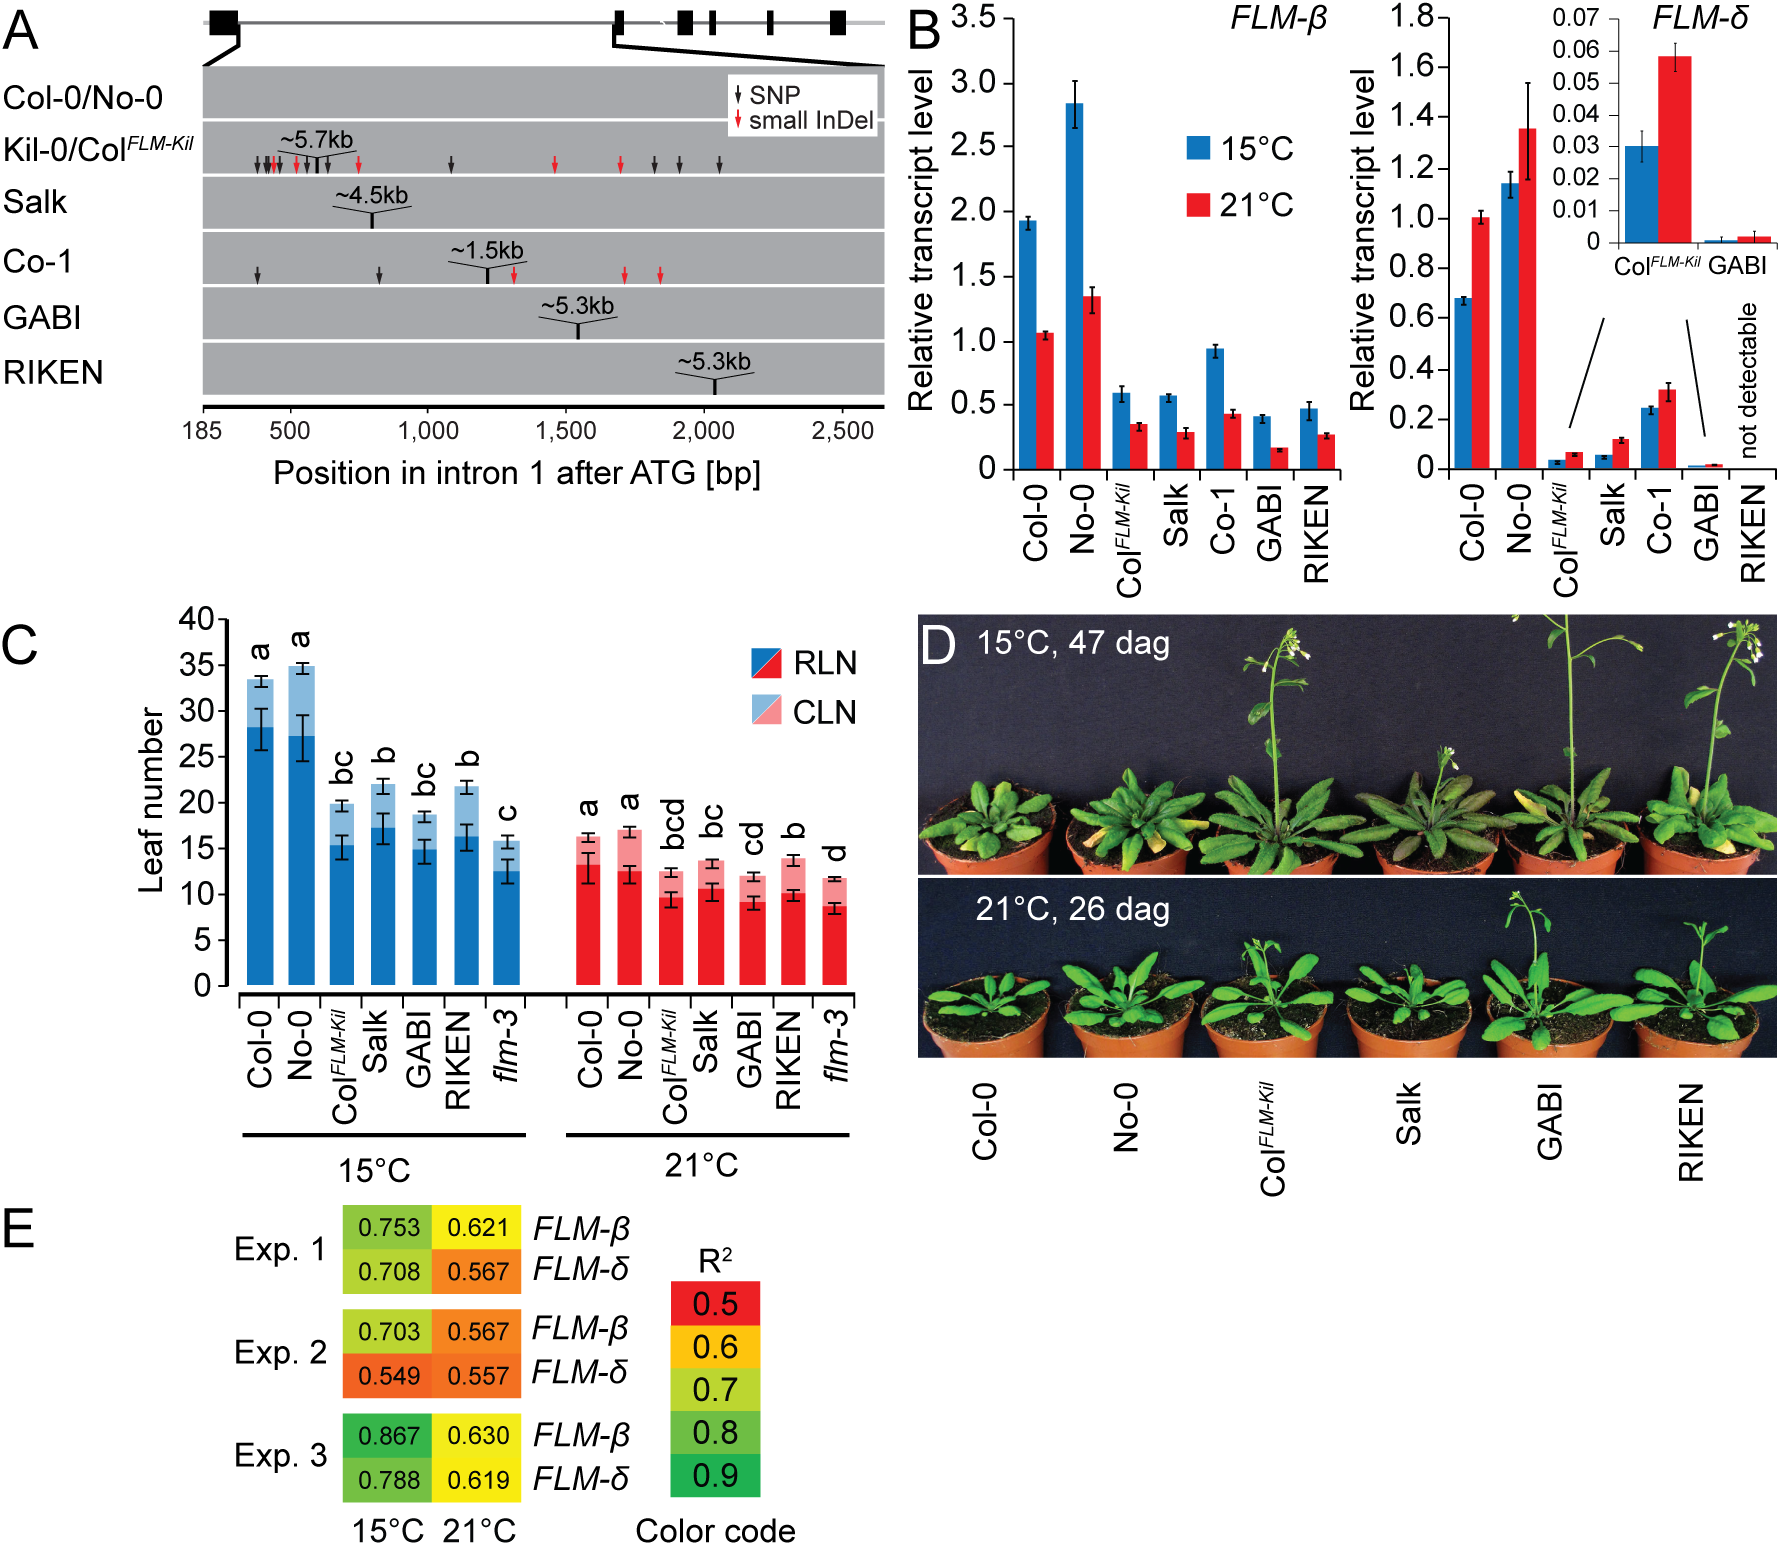 The first intron carries important regions for isoform-specific <i>FLM</i> abundance.